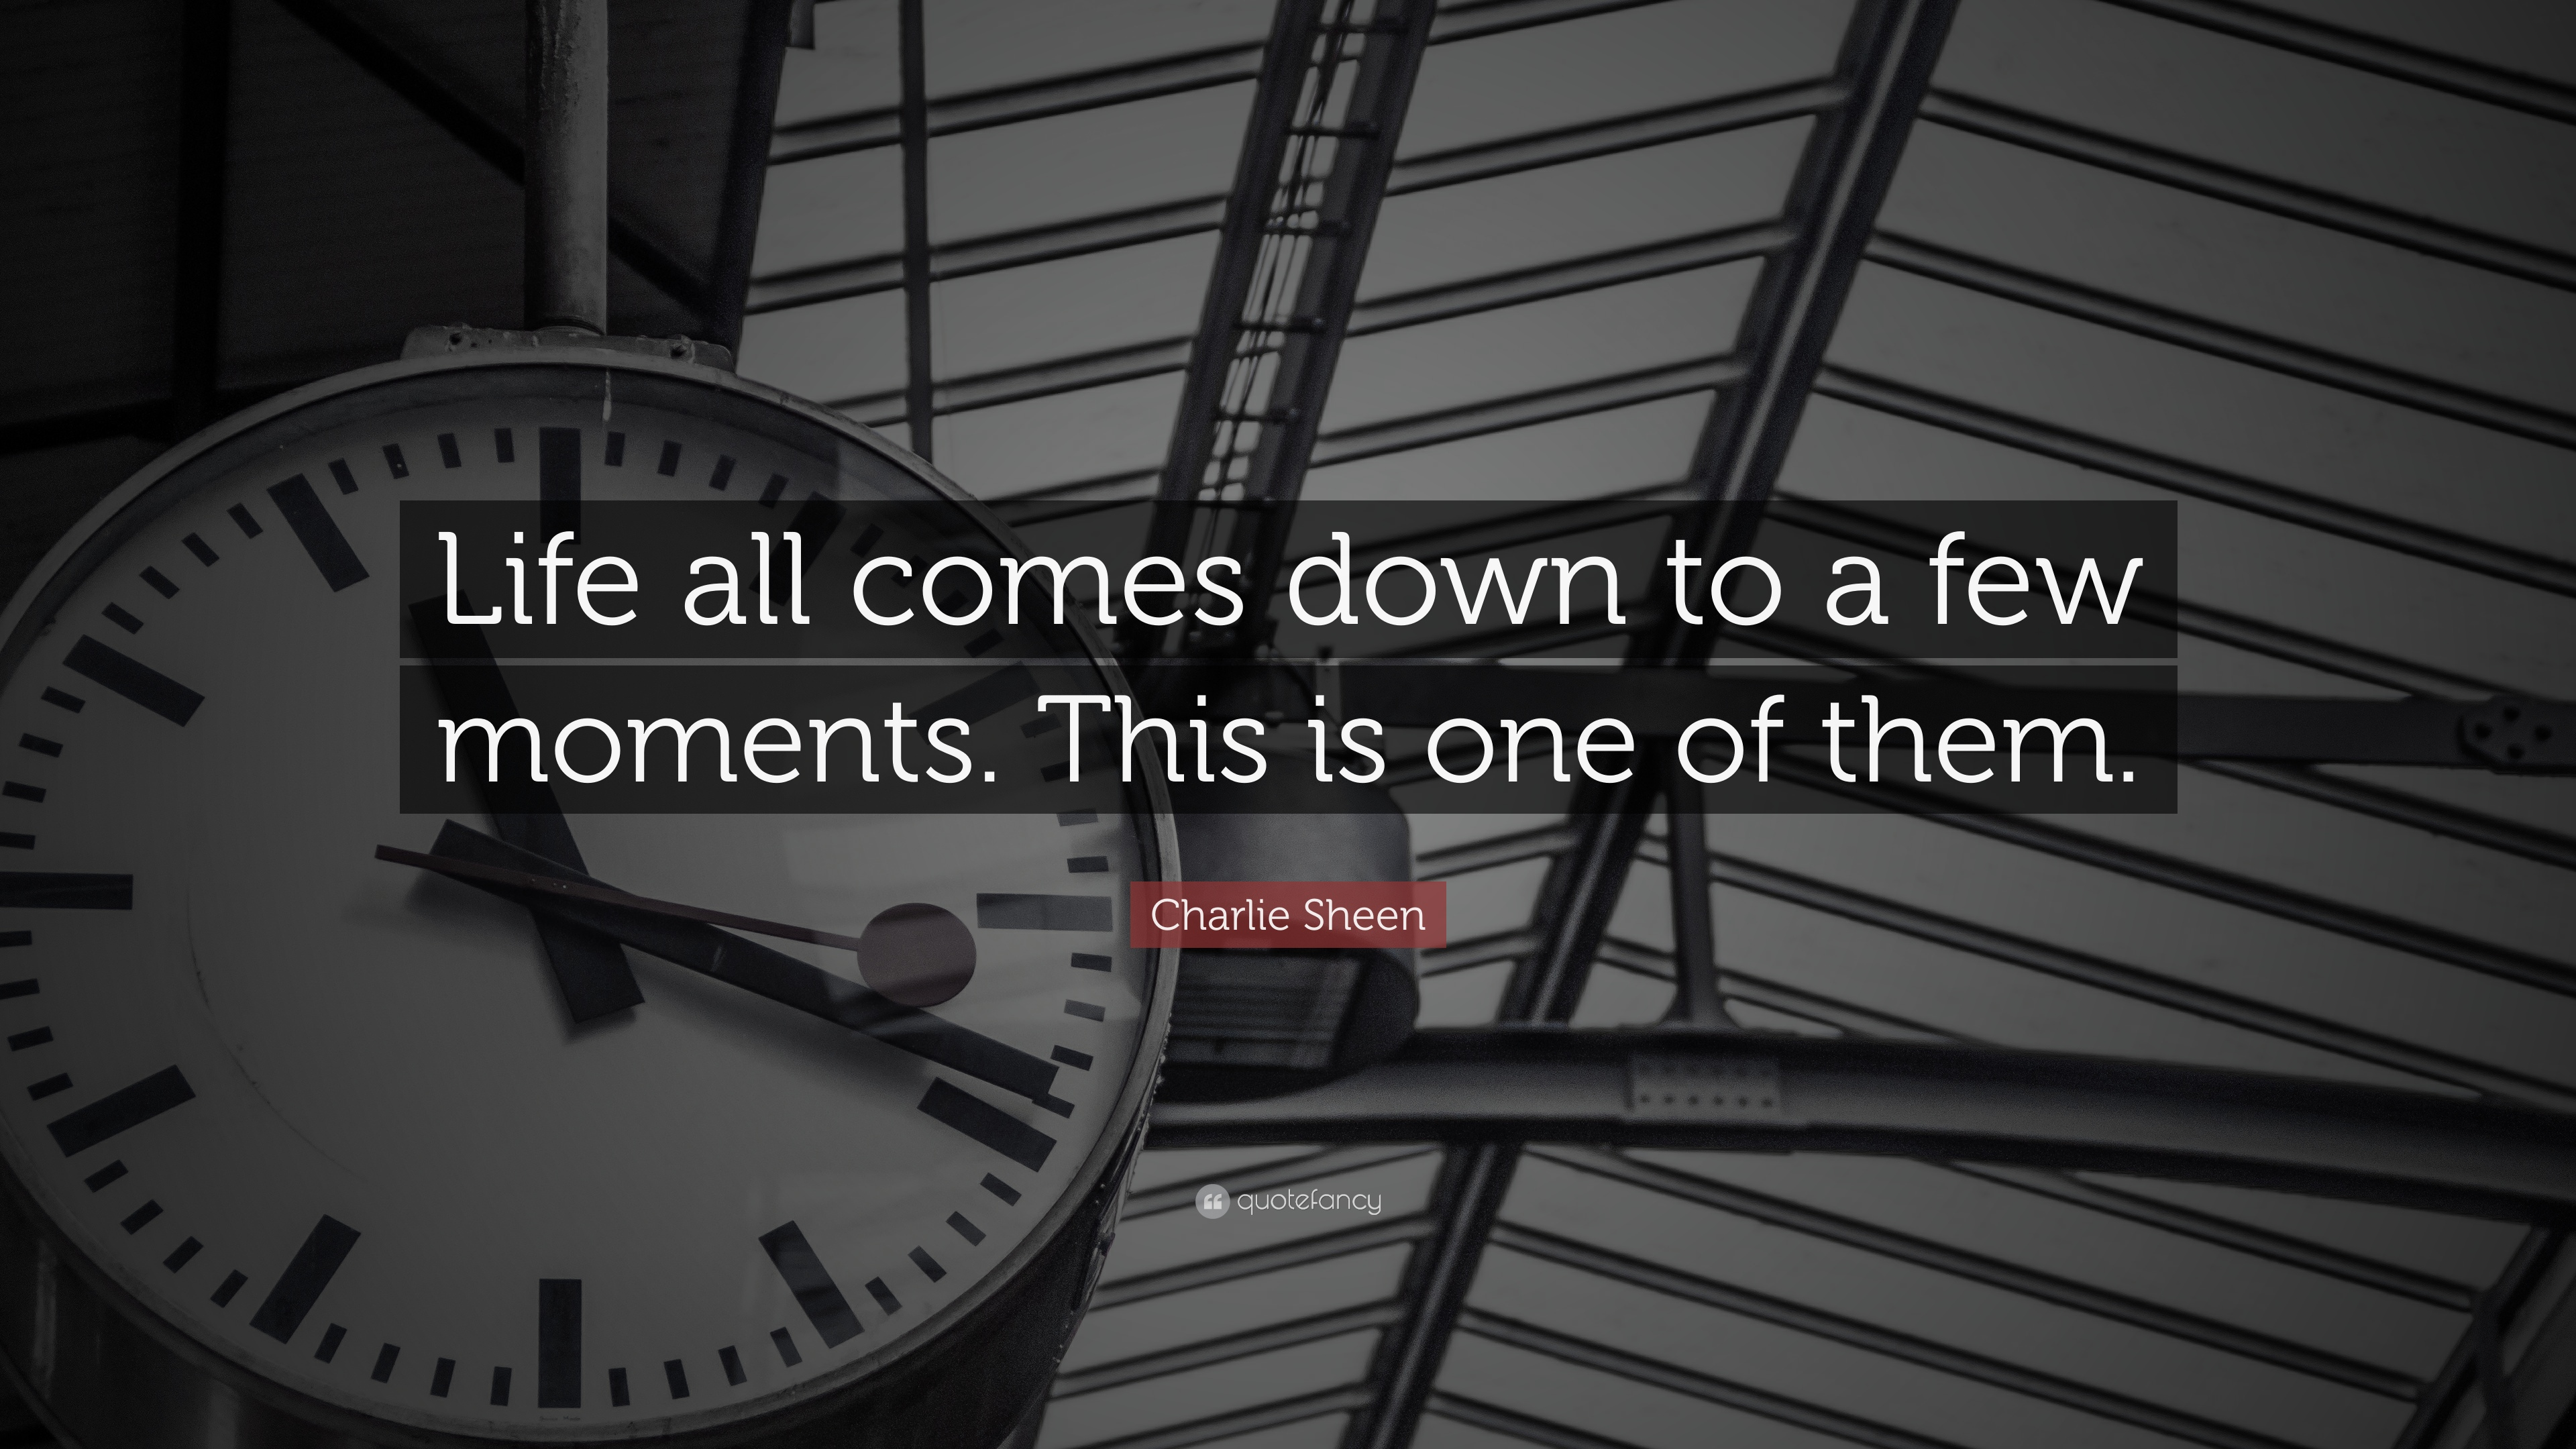 Charlie Sheen Quote Life All Comes Down To A Few Moments This Is